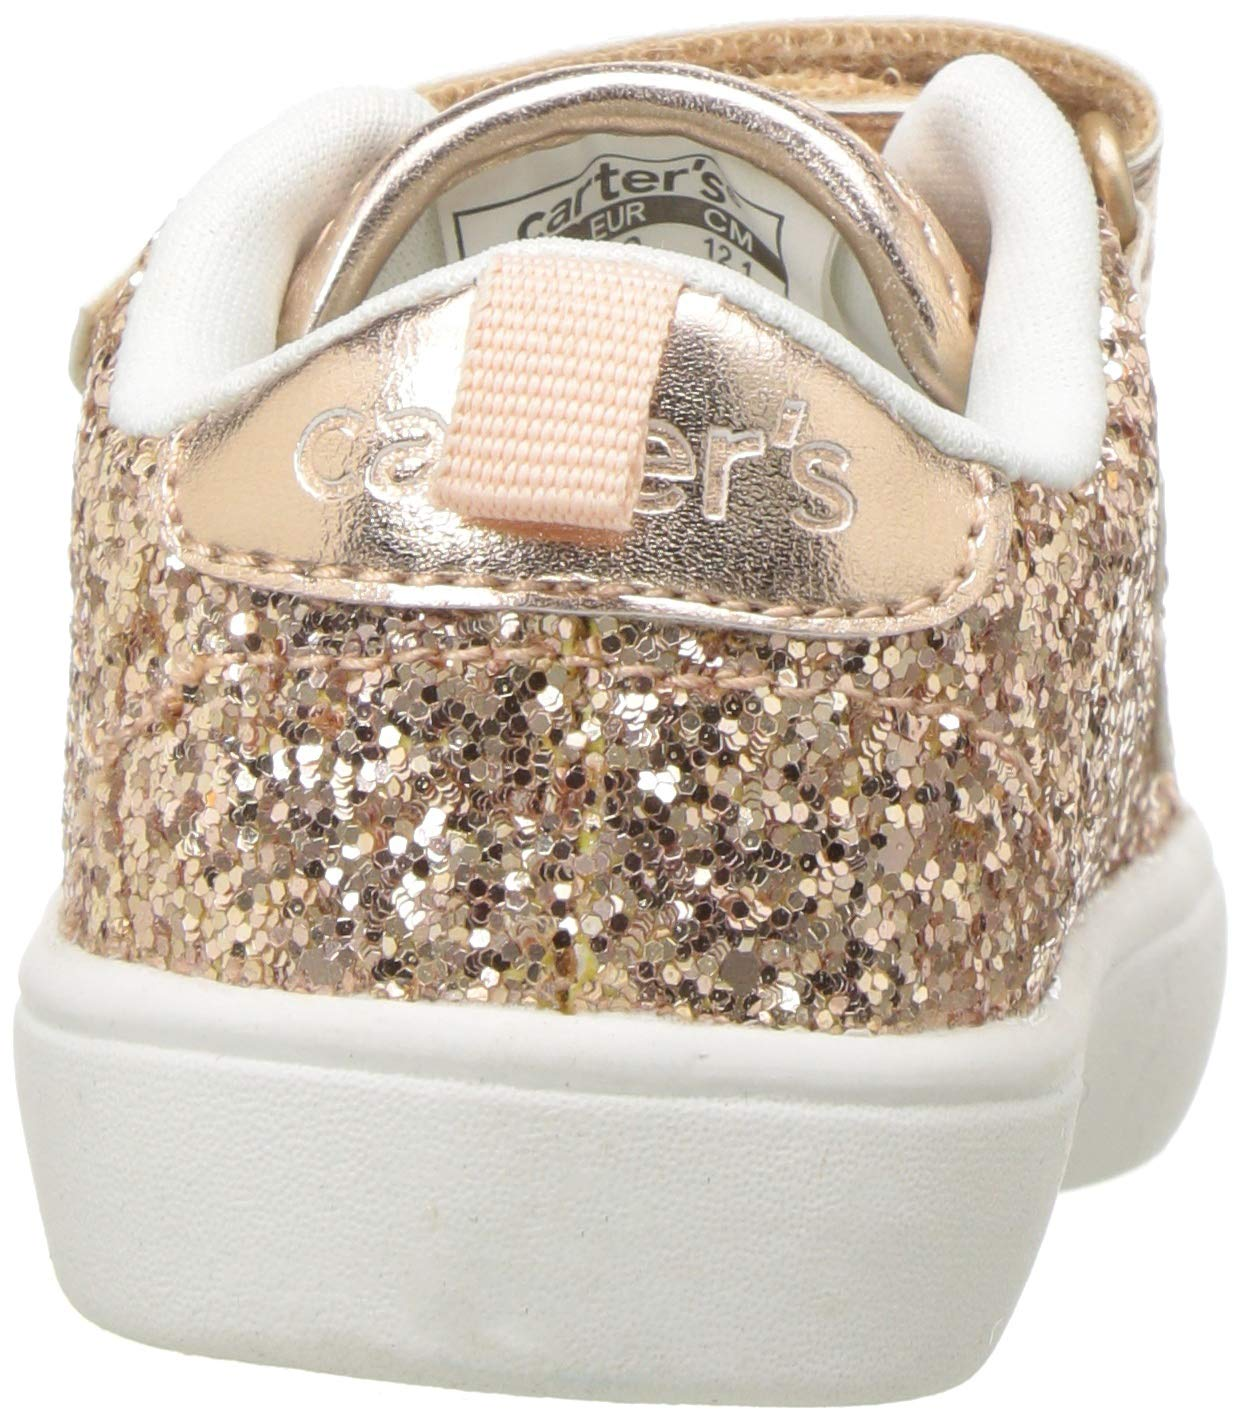 carter's Girls' Andee2 Rosegold Casual Sneaker, Rose Gold, 11 M US Little Kid by Carter's (Image #2)